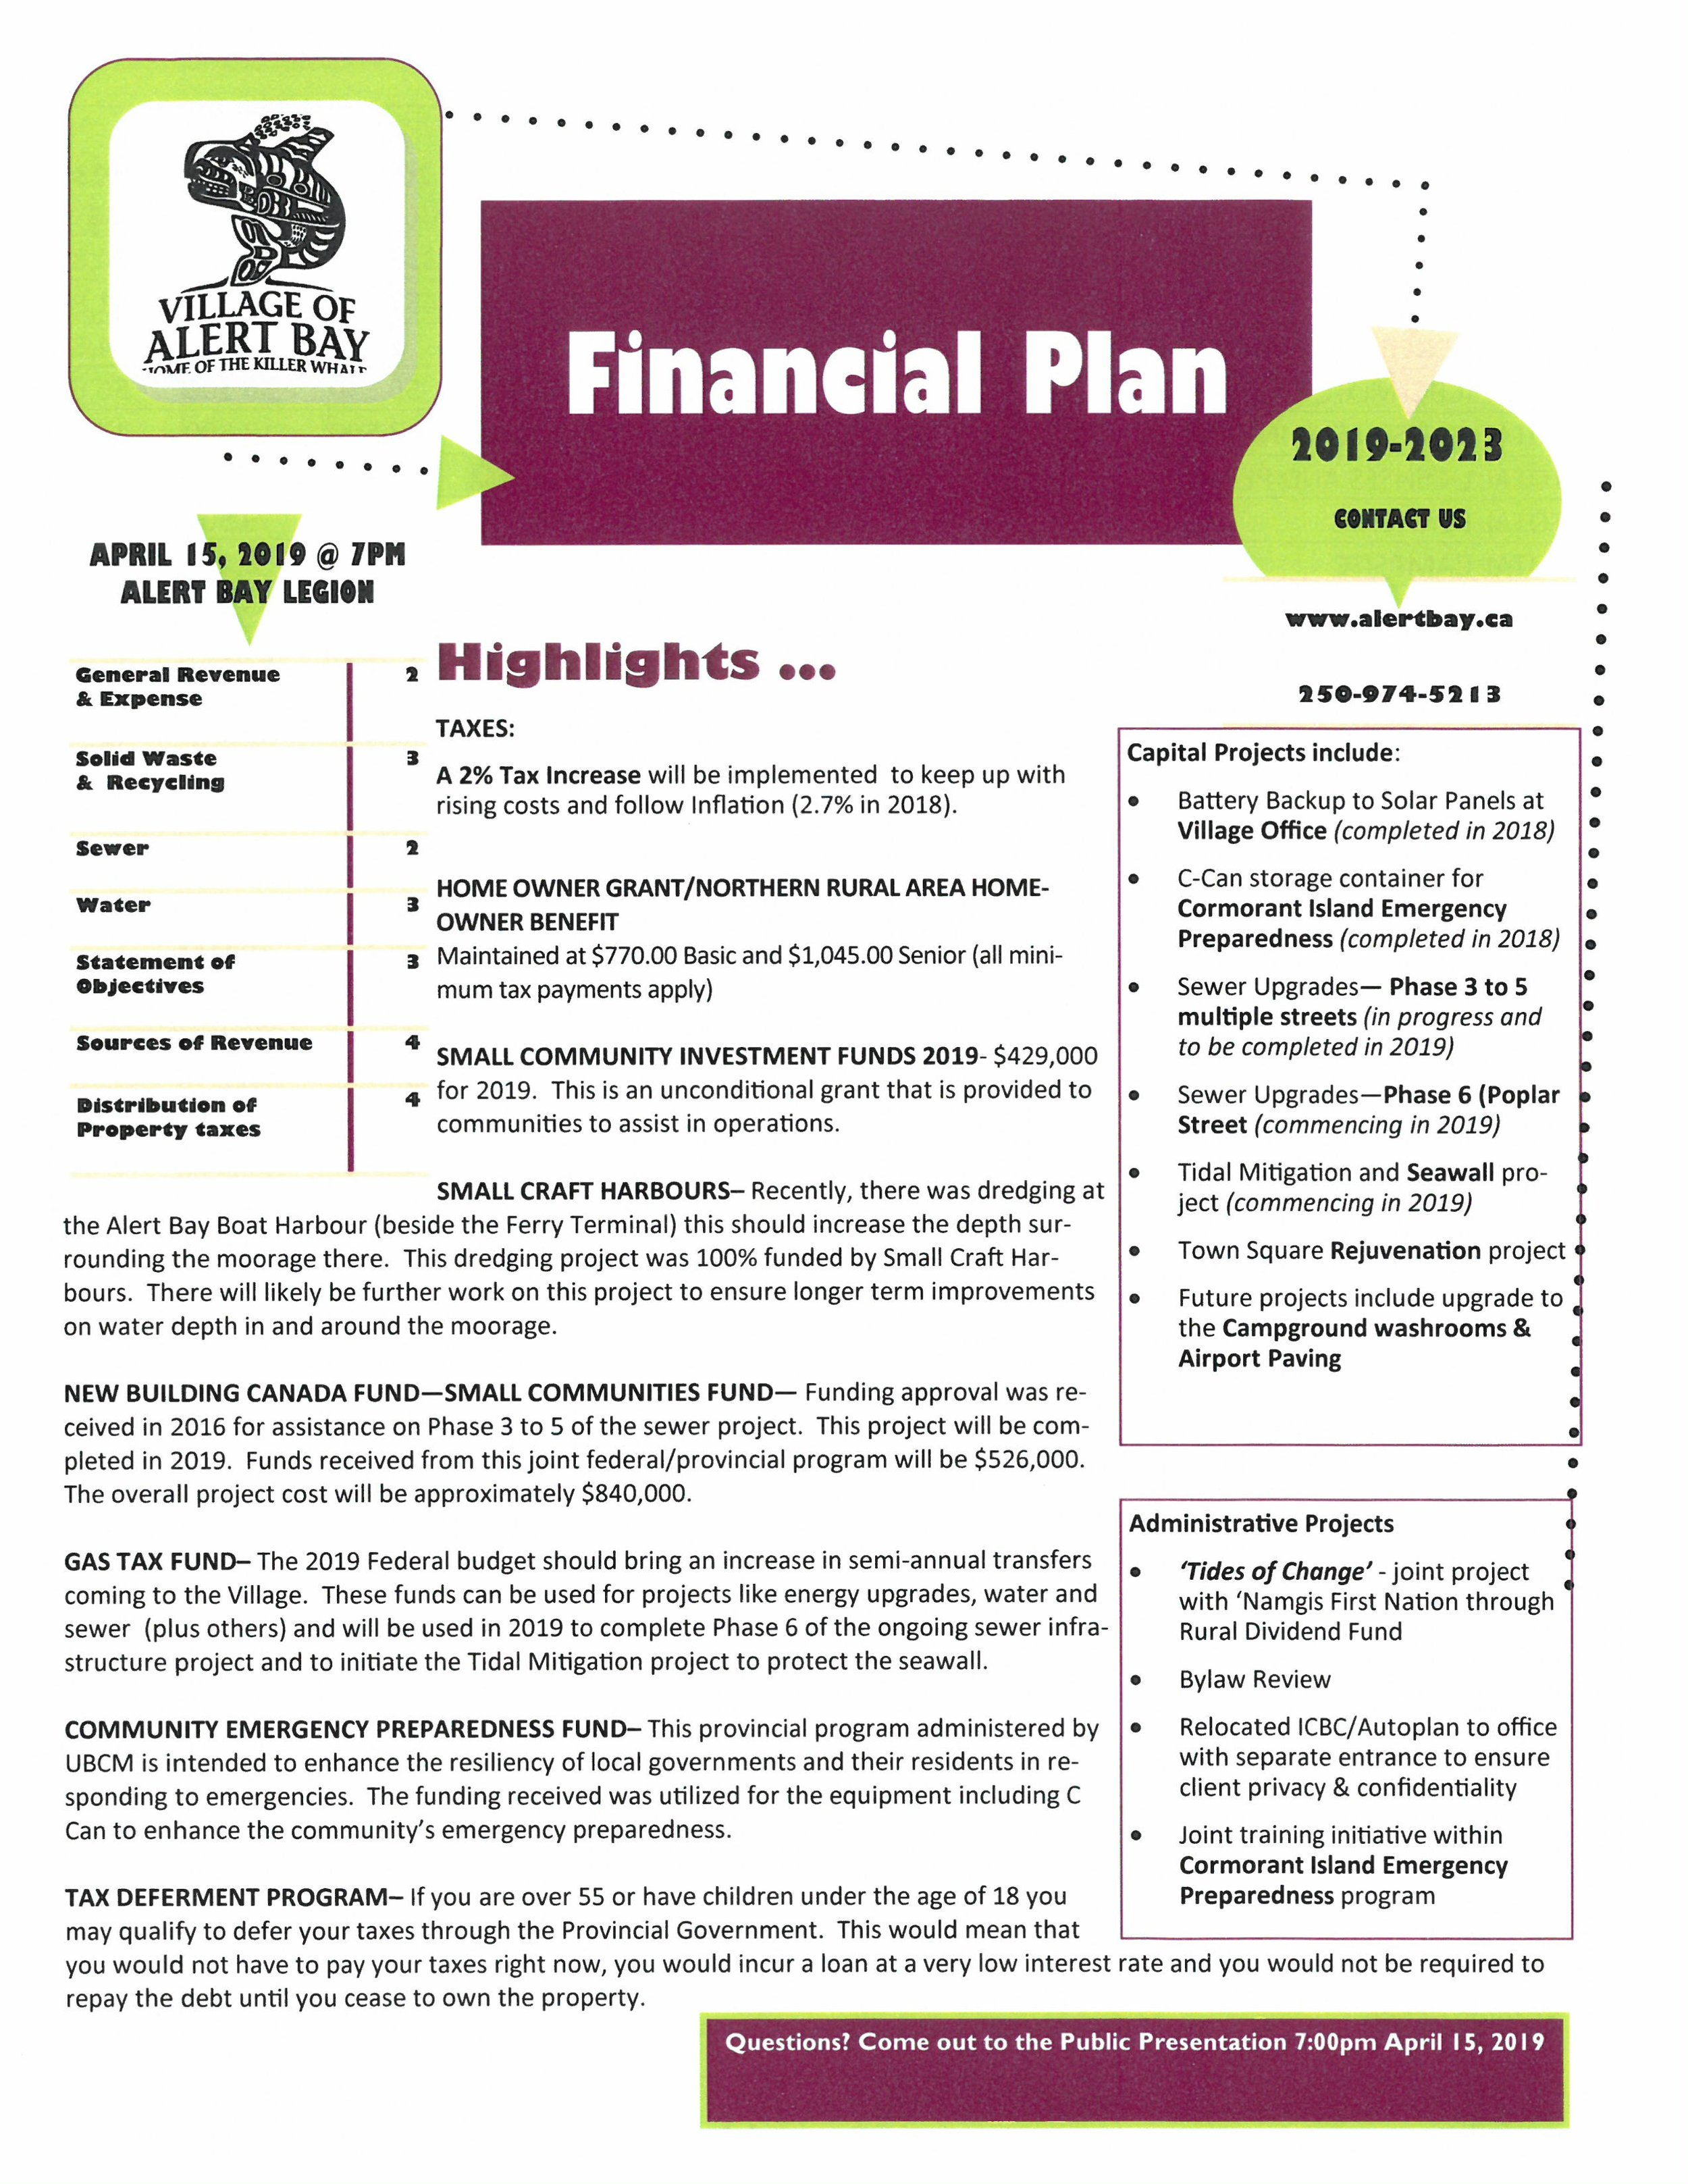 VOAB Financial Plan.jpg